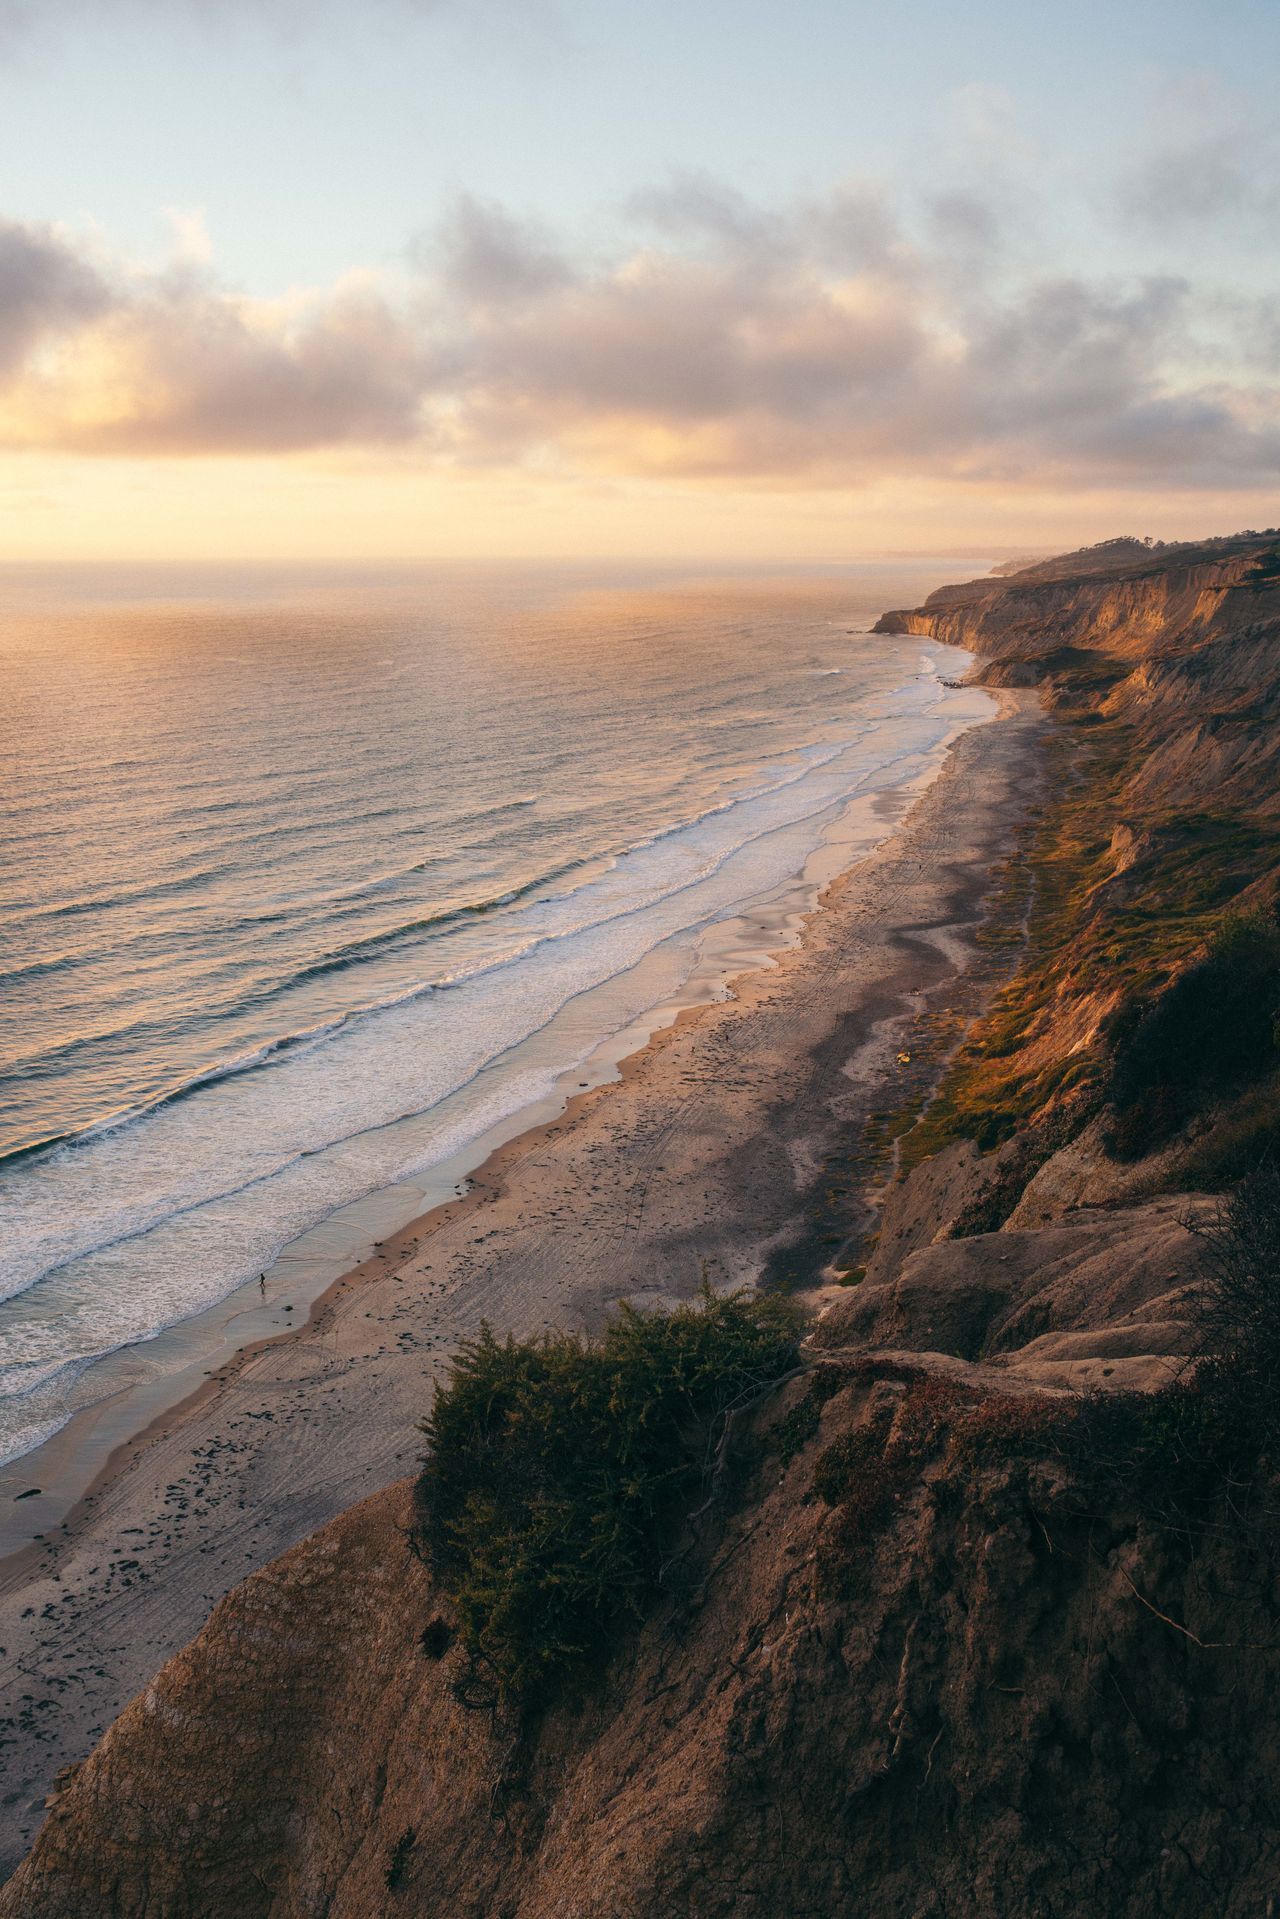 Sometimes things seem endless Sunset Sand Scenics Landscape Nature Outdoors Beauty In Nature Sky Tranquility No People Sea Beach Travel Destinations Day Arid Climate Desert Water Low Tide Ocean California Horizon Over Water San Diego Travel Gold The Great Outdoors - 2017 EyeEm Awards